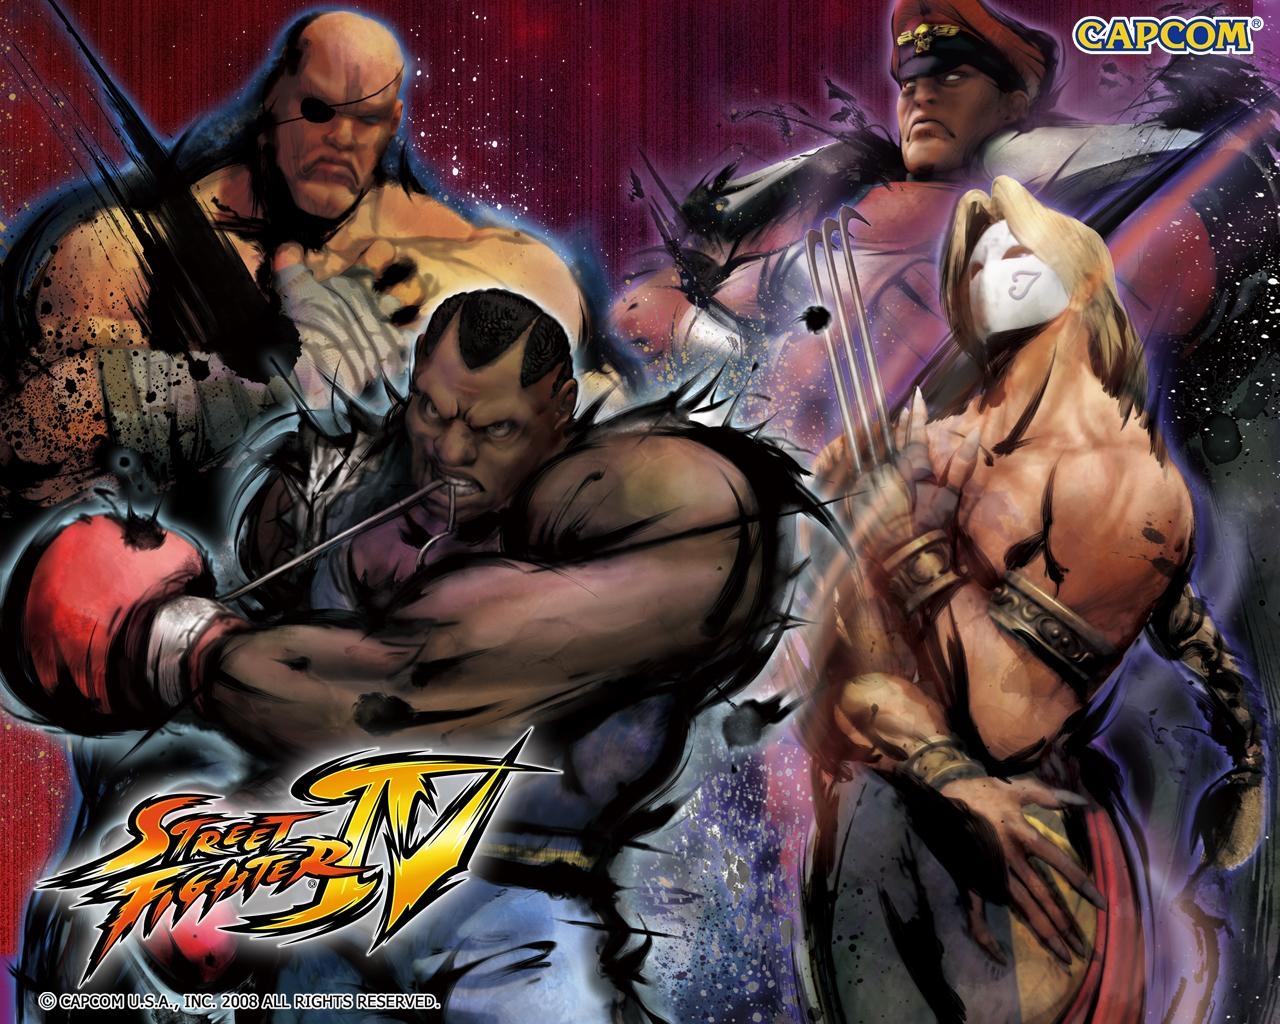 Обои Street Fighter IV Компания